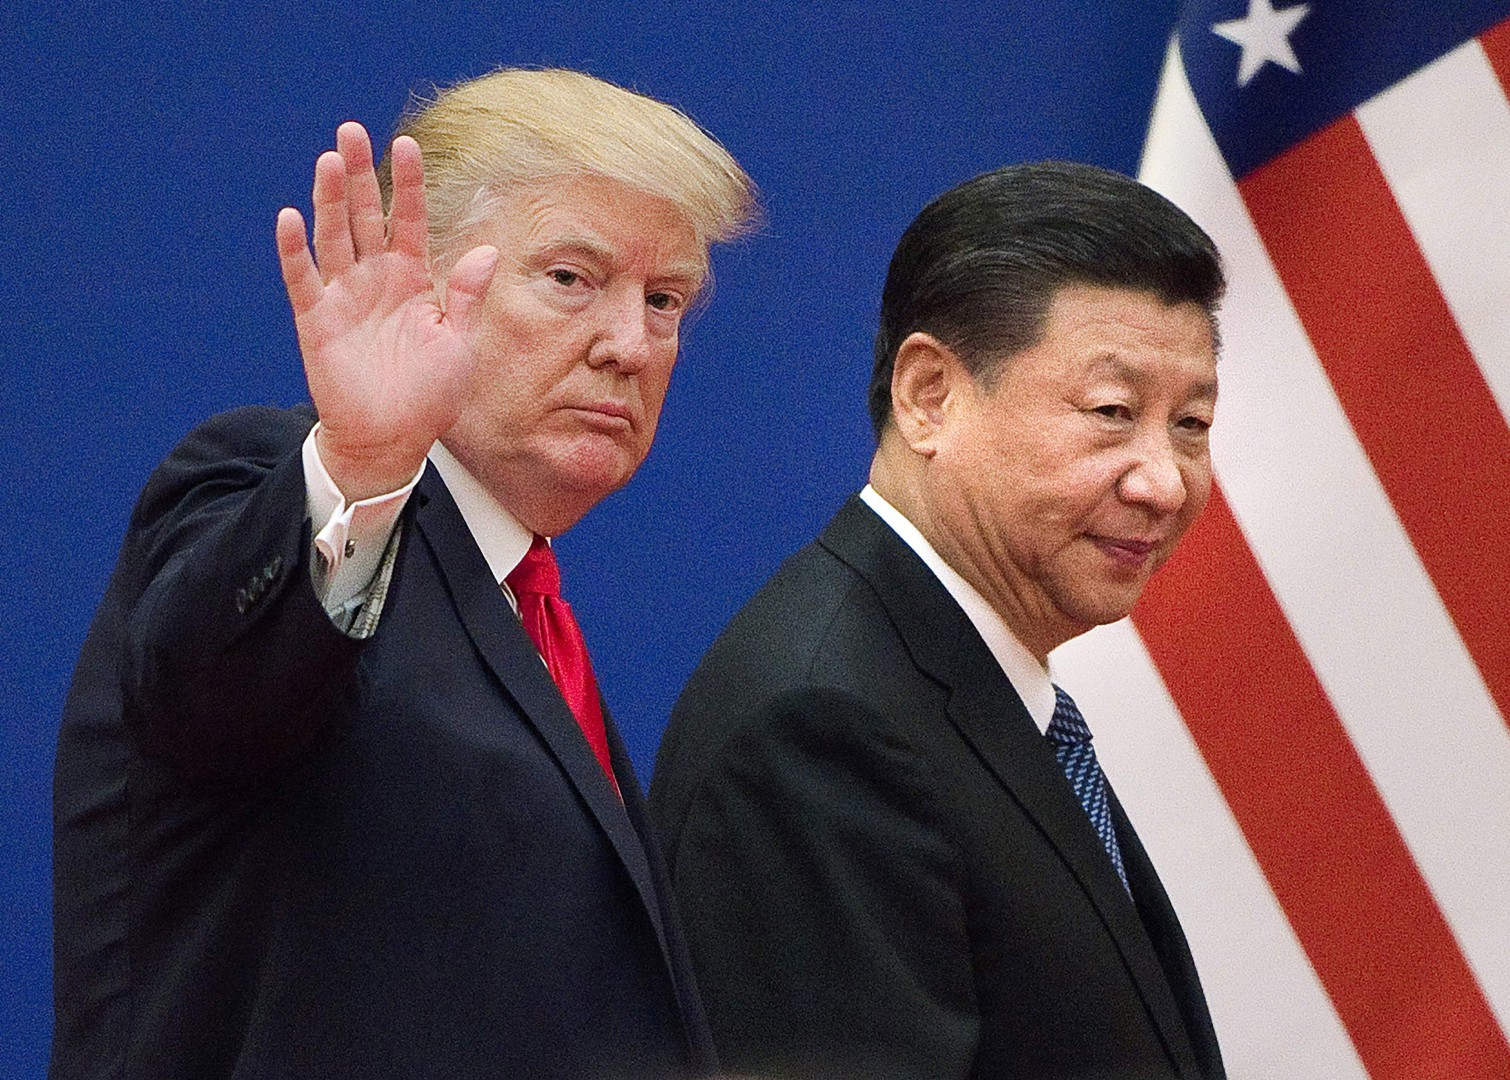 """(FILES) This file picture taken on November 9, 2017, shows US President Donald Trump (L) and China's President Xi Jinping leaving a business leaders event at the Great Hall of the People in Beijing. - Trump said on December 7, 2018, the negotiations to defuse the trade conflict with China are """"going very well."""" Trump met Xi during the G-20 summit in Buenos Aires and agreed to a 90-day tariff truce in order to find a more permanent solution to the costly dispute, but messages since have been mixed, roiling global stock markets. """"China talks are going very well!"""" Trump tweeted. (Photo by Nicolas ASFOURI / AFP)"""